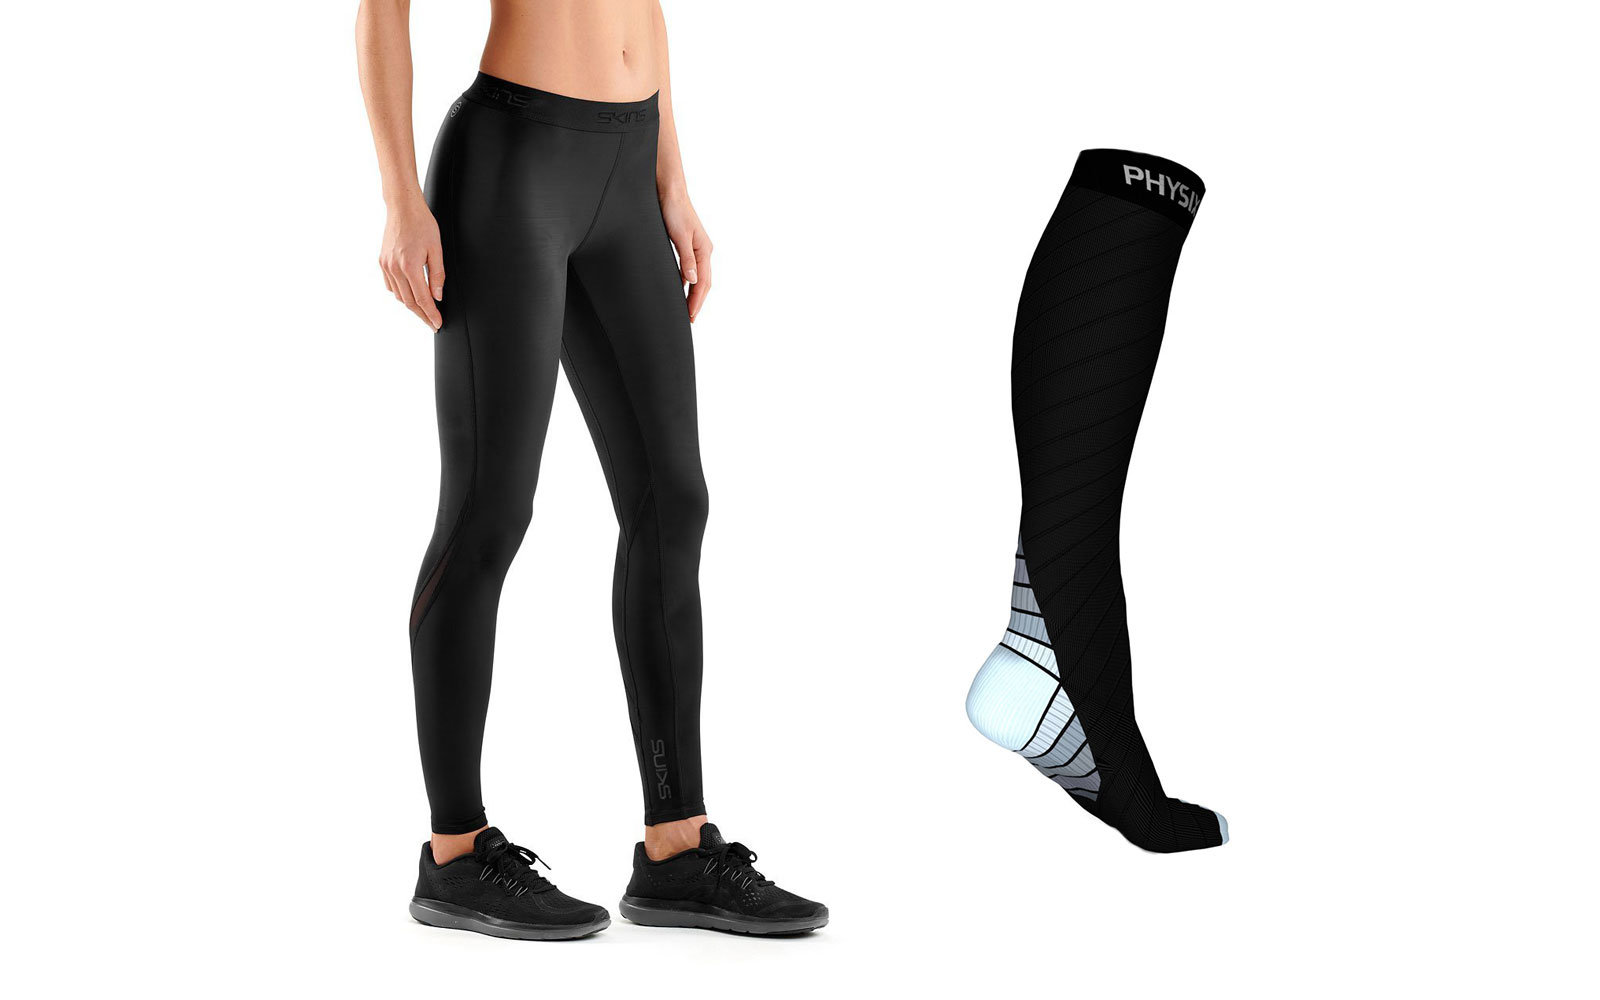 compression socks or leggings